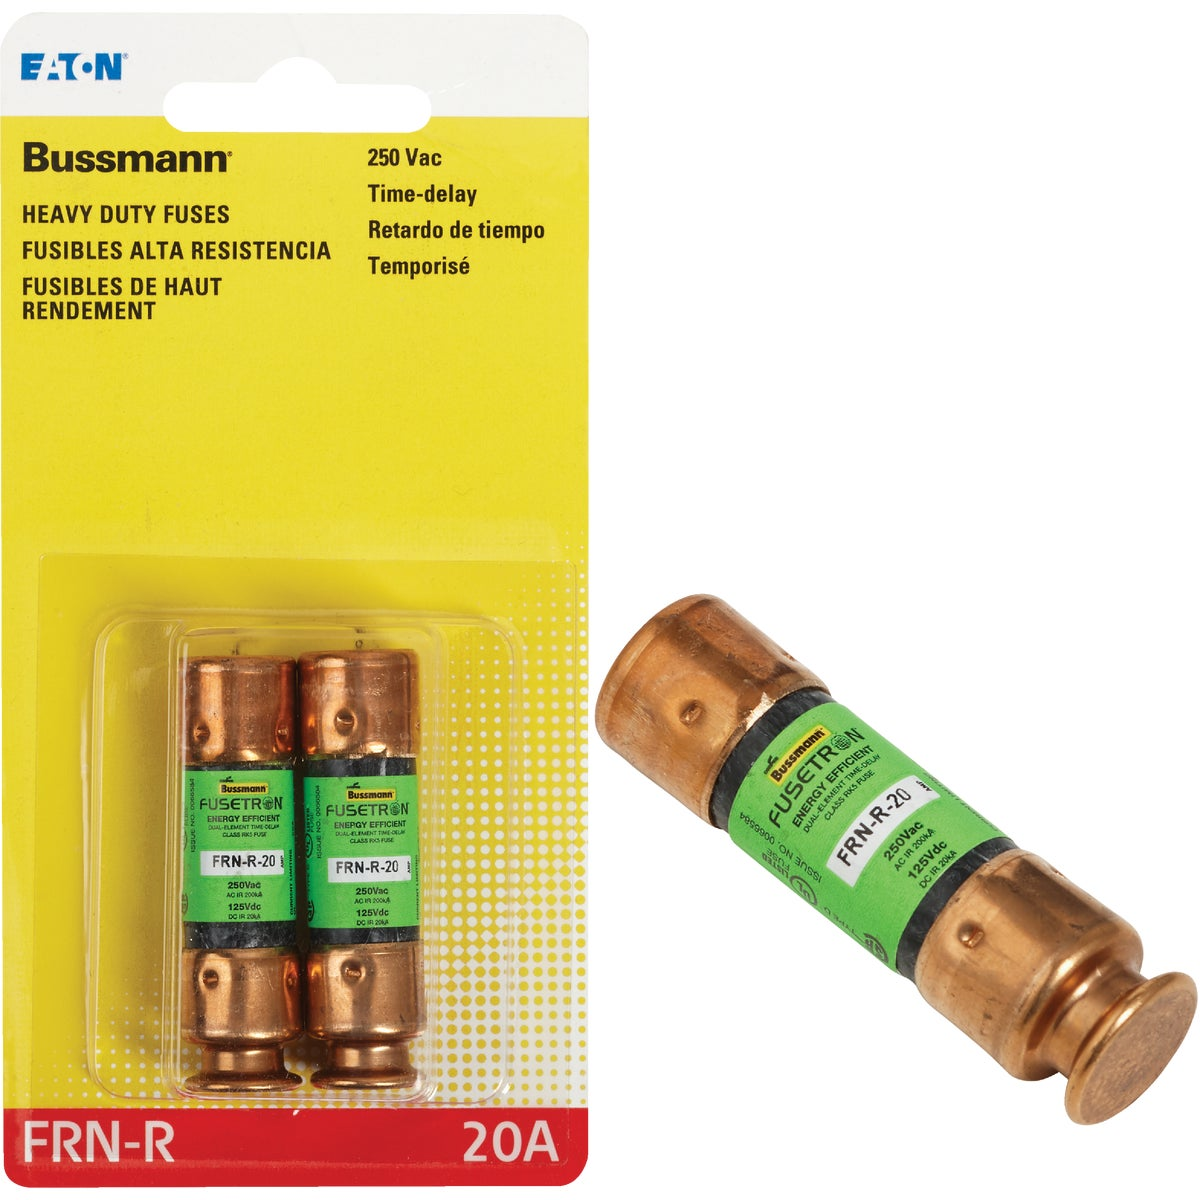 20A CARTRIDGE FUSE - BP/FRN-R-20 by Bussmann Cooper